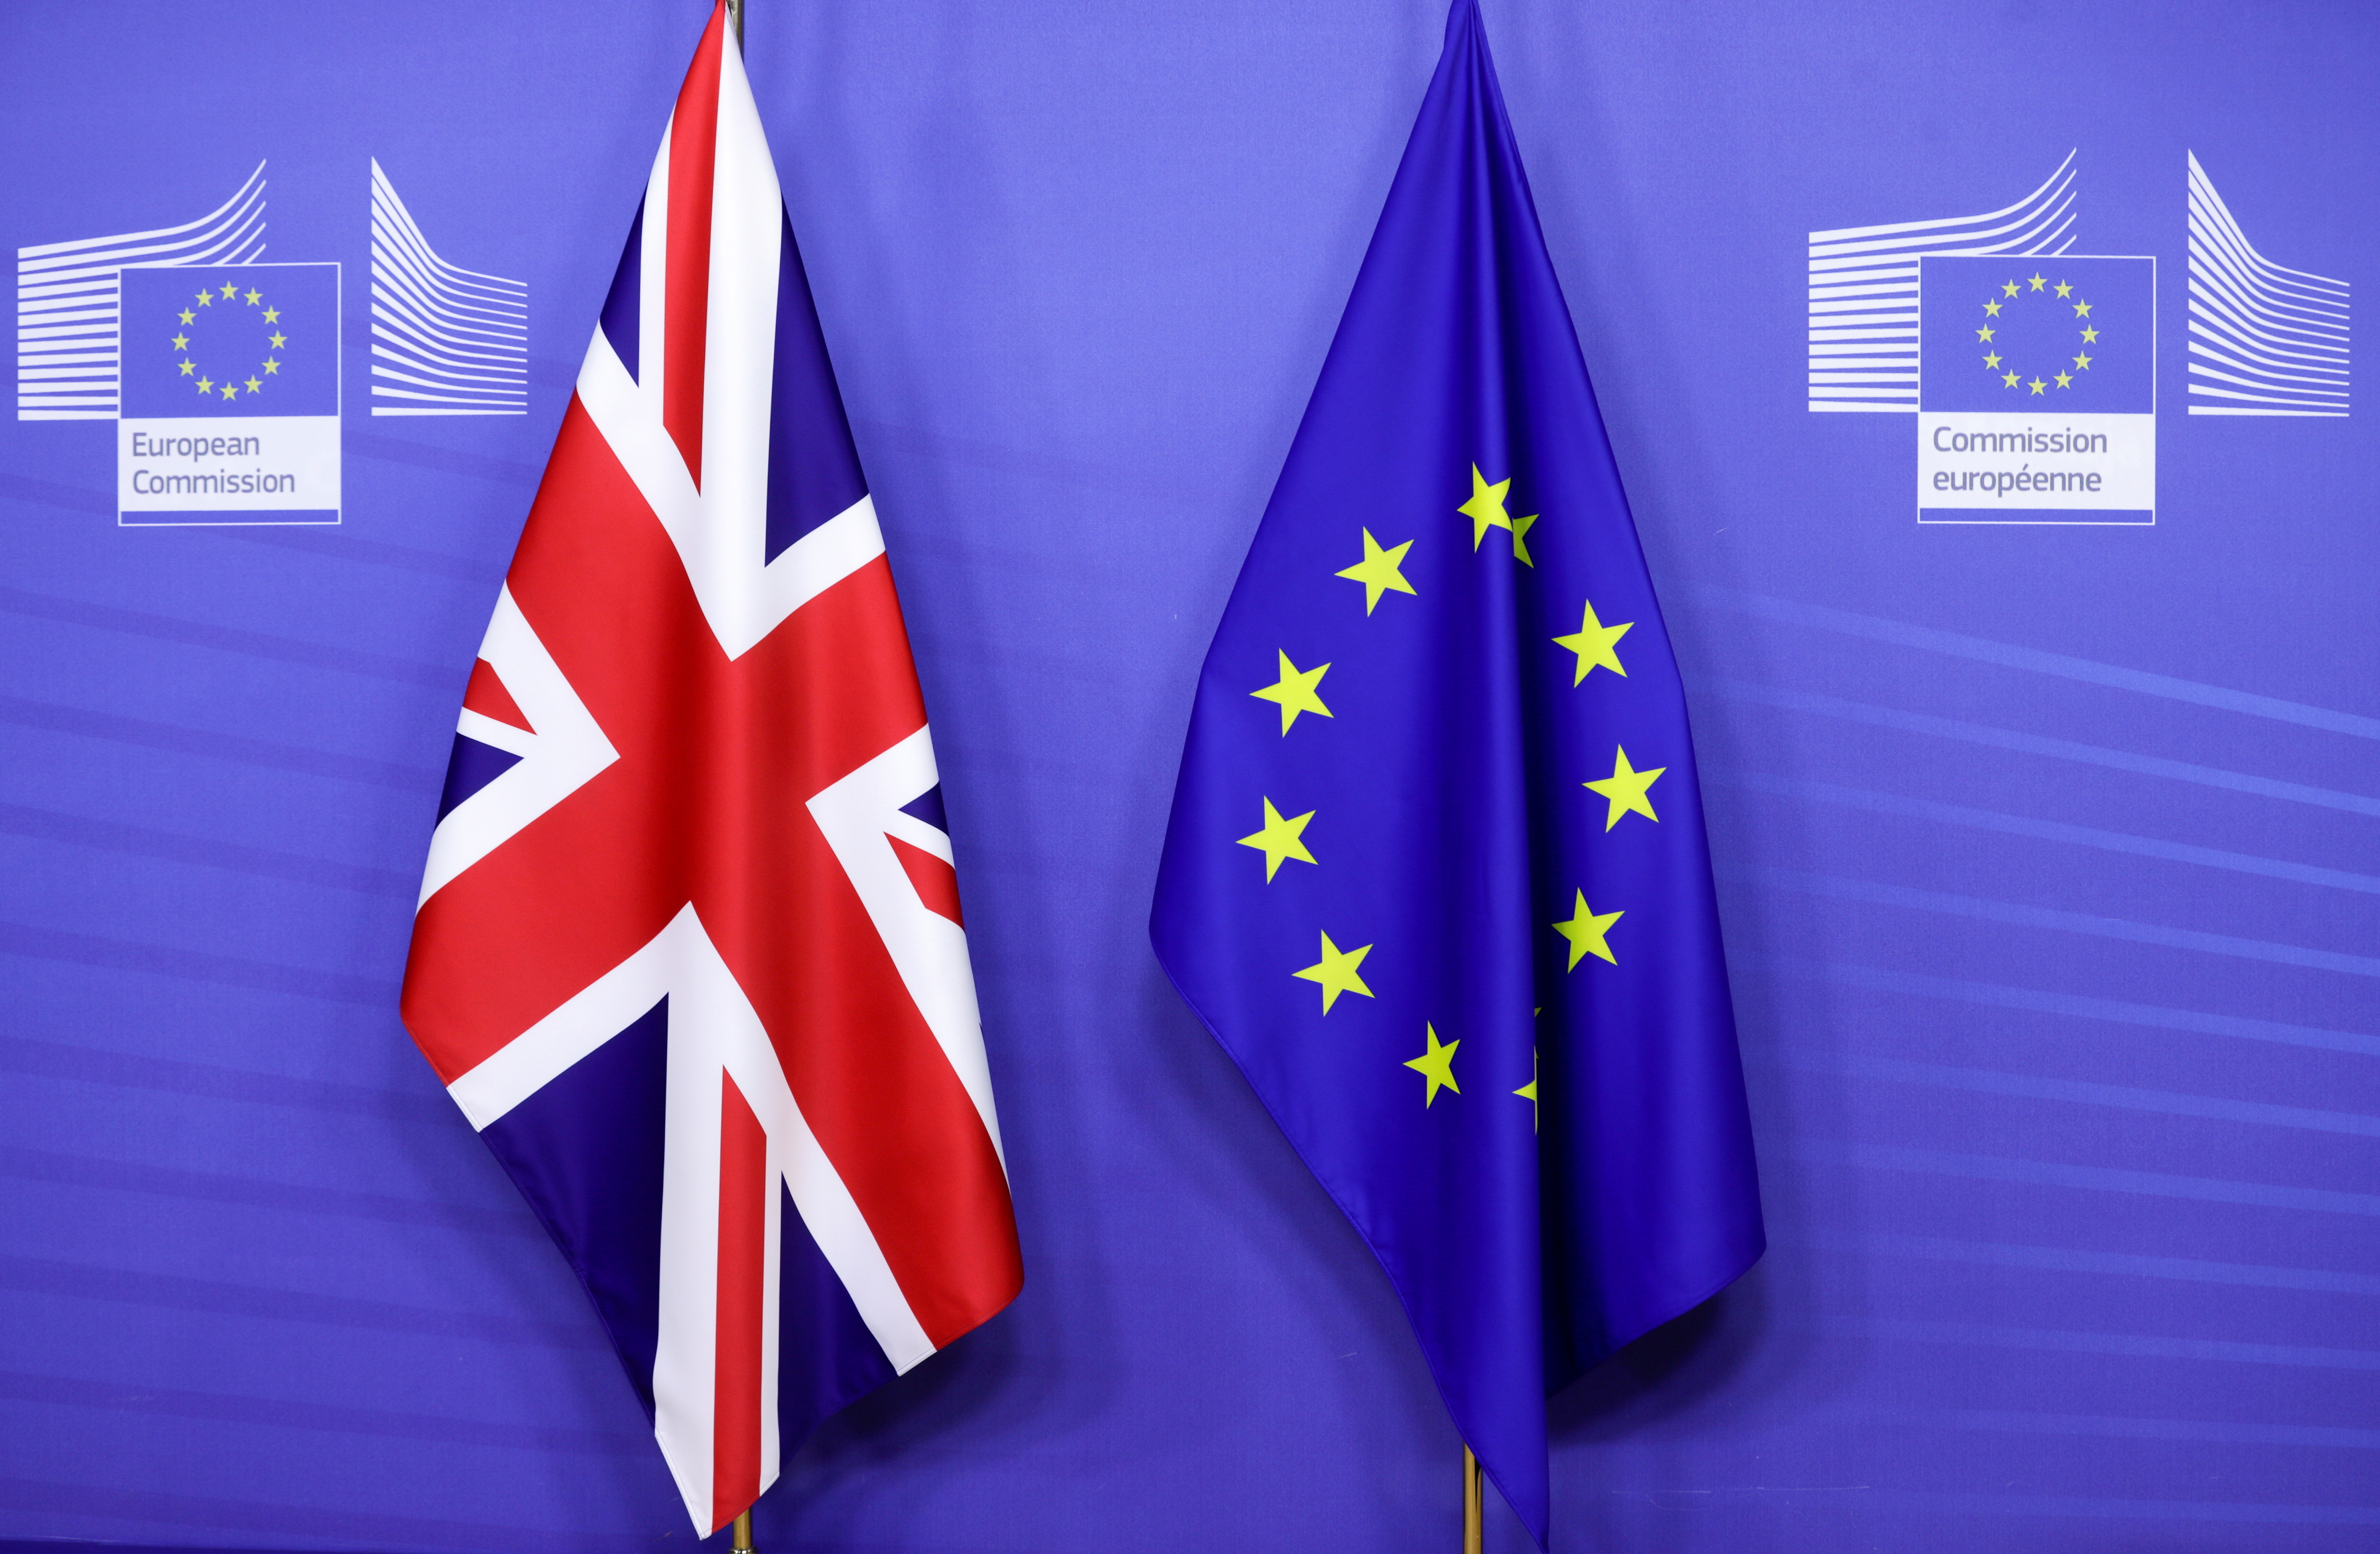 Flags of the Union Jack and European Union are seen ahead of the meeting of European Commission President Ursula von der Leyen and British Prime Minister Boris Johnson, in Brussels, Belgium December 9, 2020. Olivier Hoslet/Pool via REUTERS/File Photo